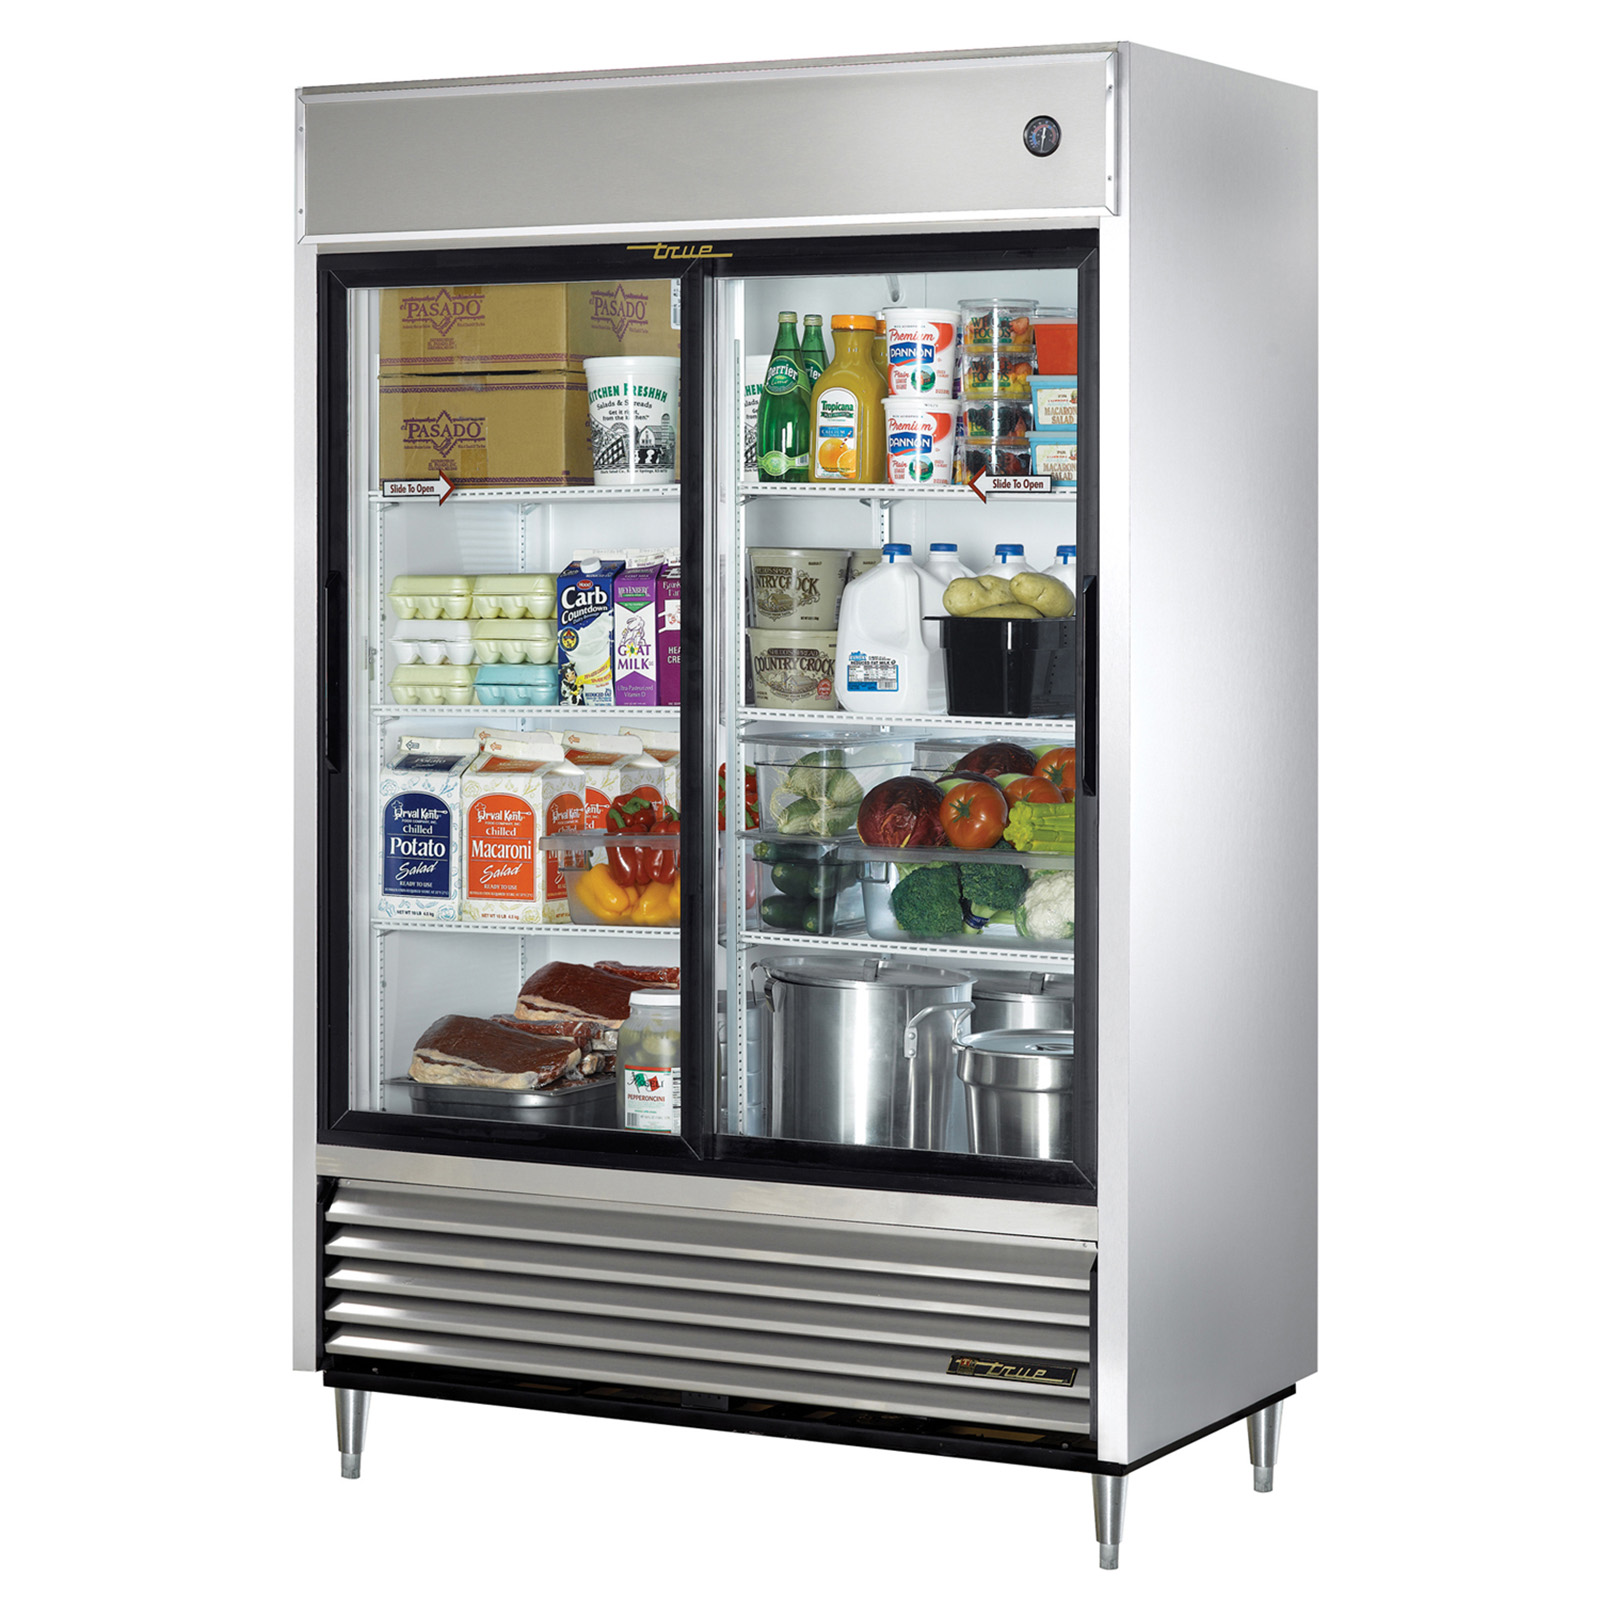 TSD-47G-LD True - Refrigerator Reach-in